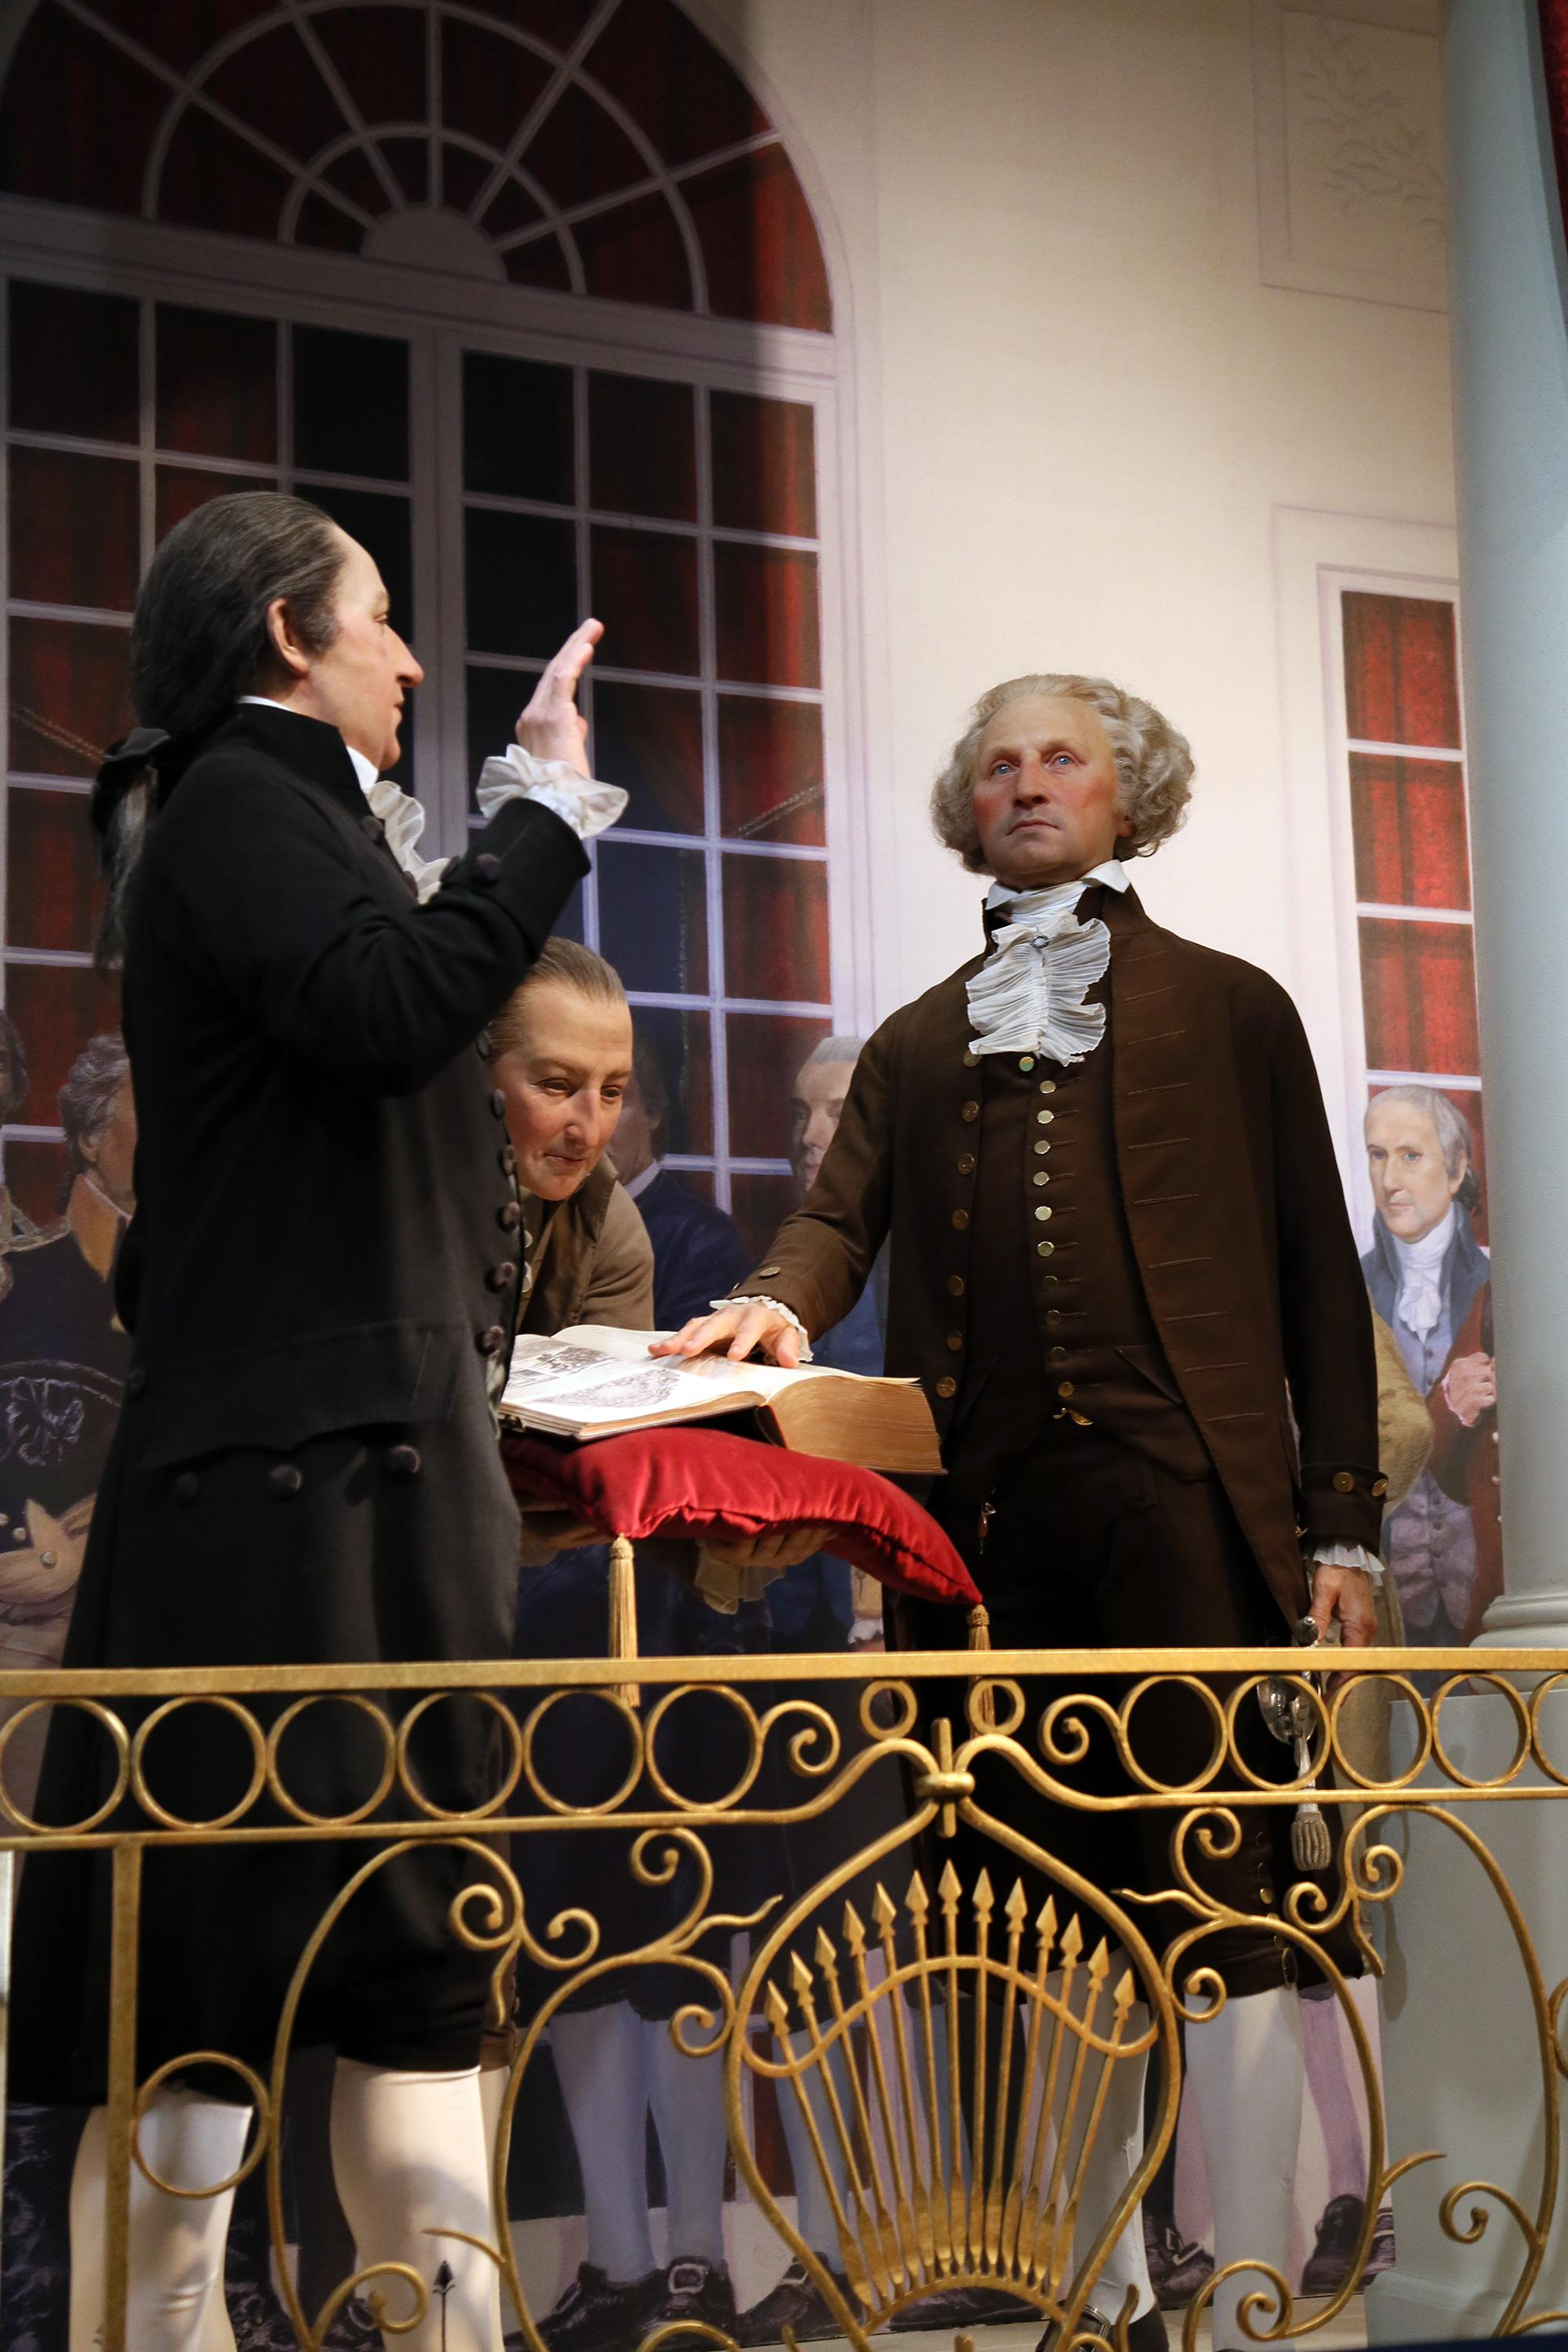 A recreation of Washington's inauguration, from Mount Vernon's Ford Orientation Center